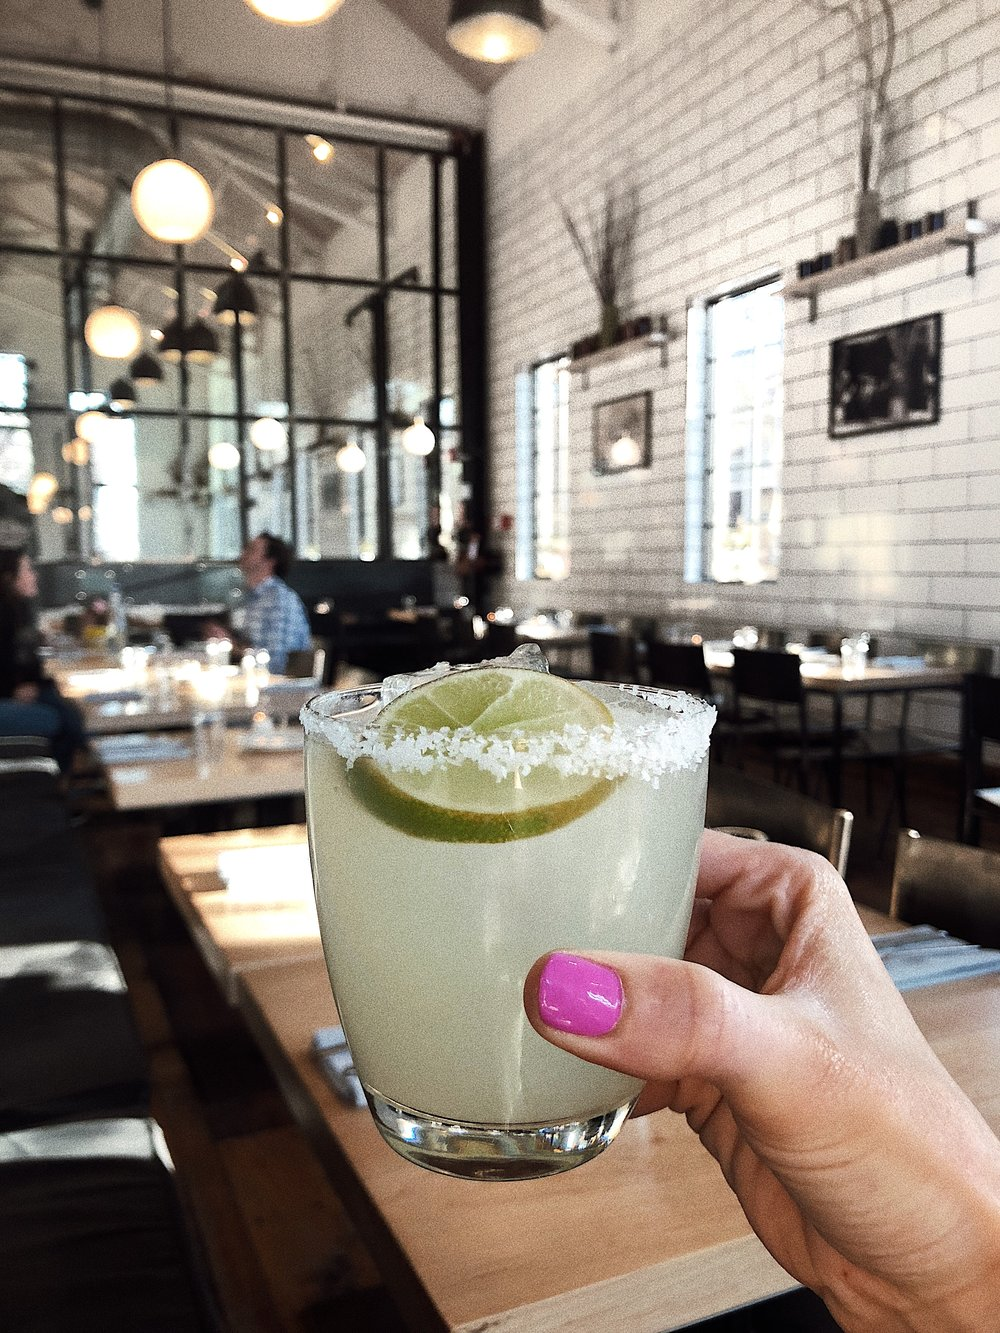 butchertown-hall-nashville-tennessee-best-margarita-restaurant-the-second-muse.jpg